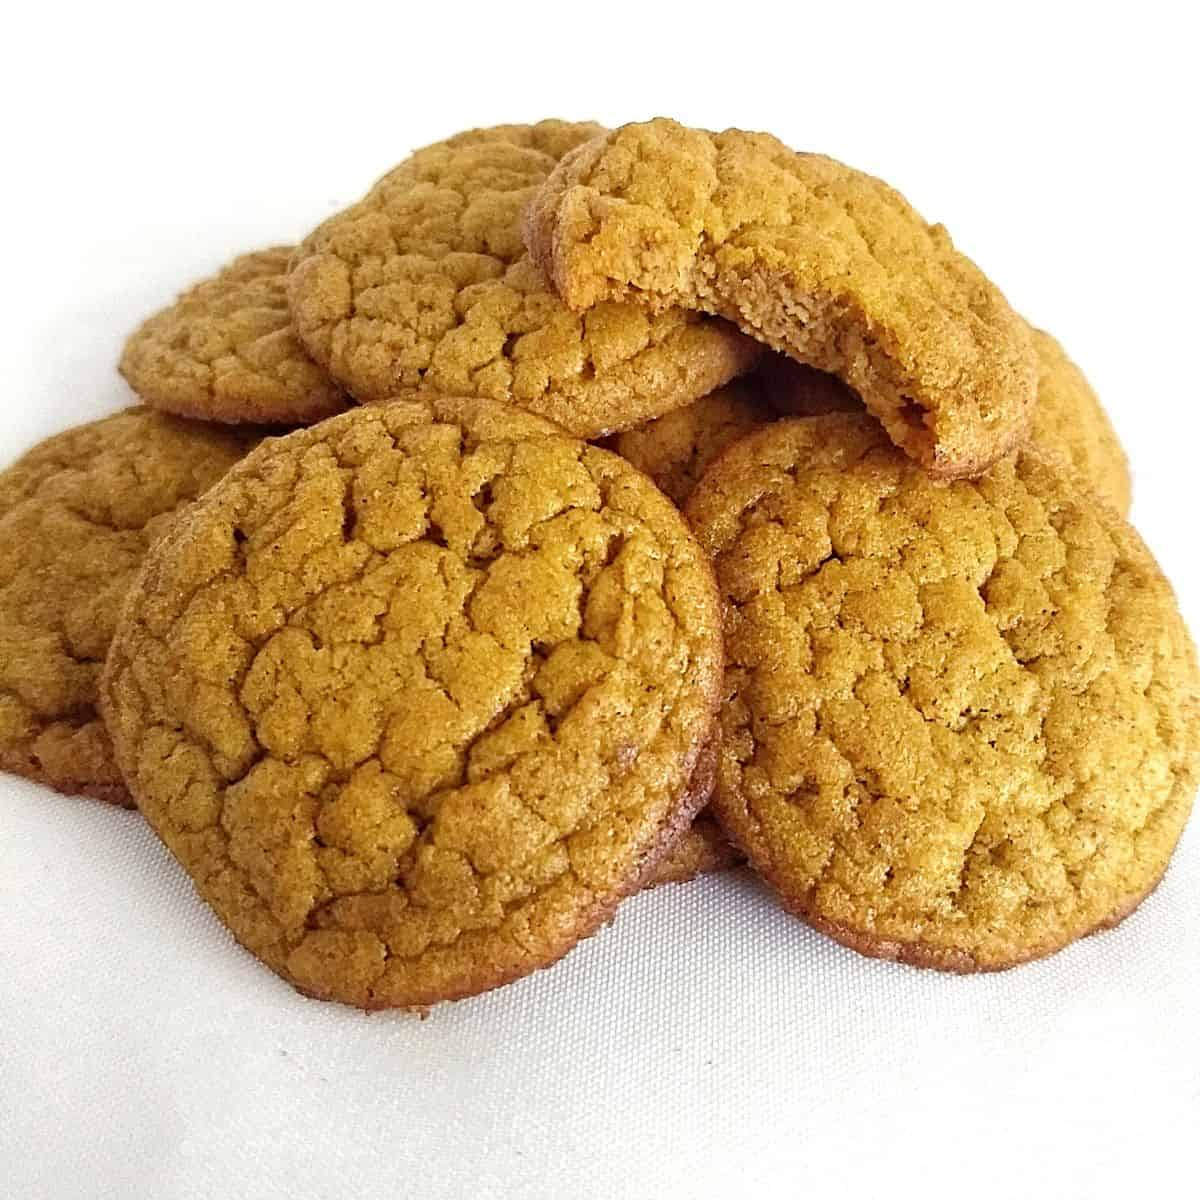 Pile of Keto Pumpkin Cookies with Coconut Flour - Keto Coconut Flour Recipes: Desserts to Dinners